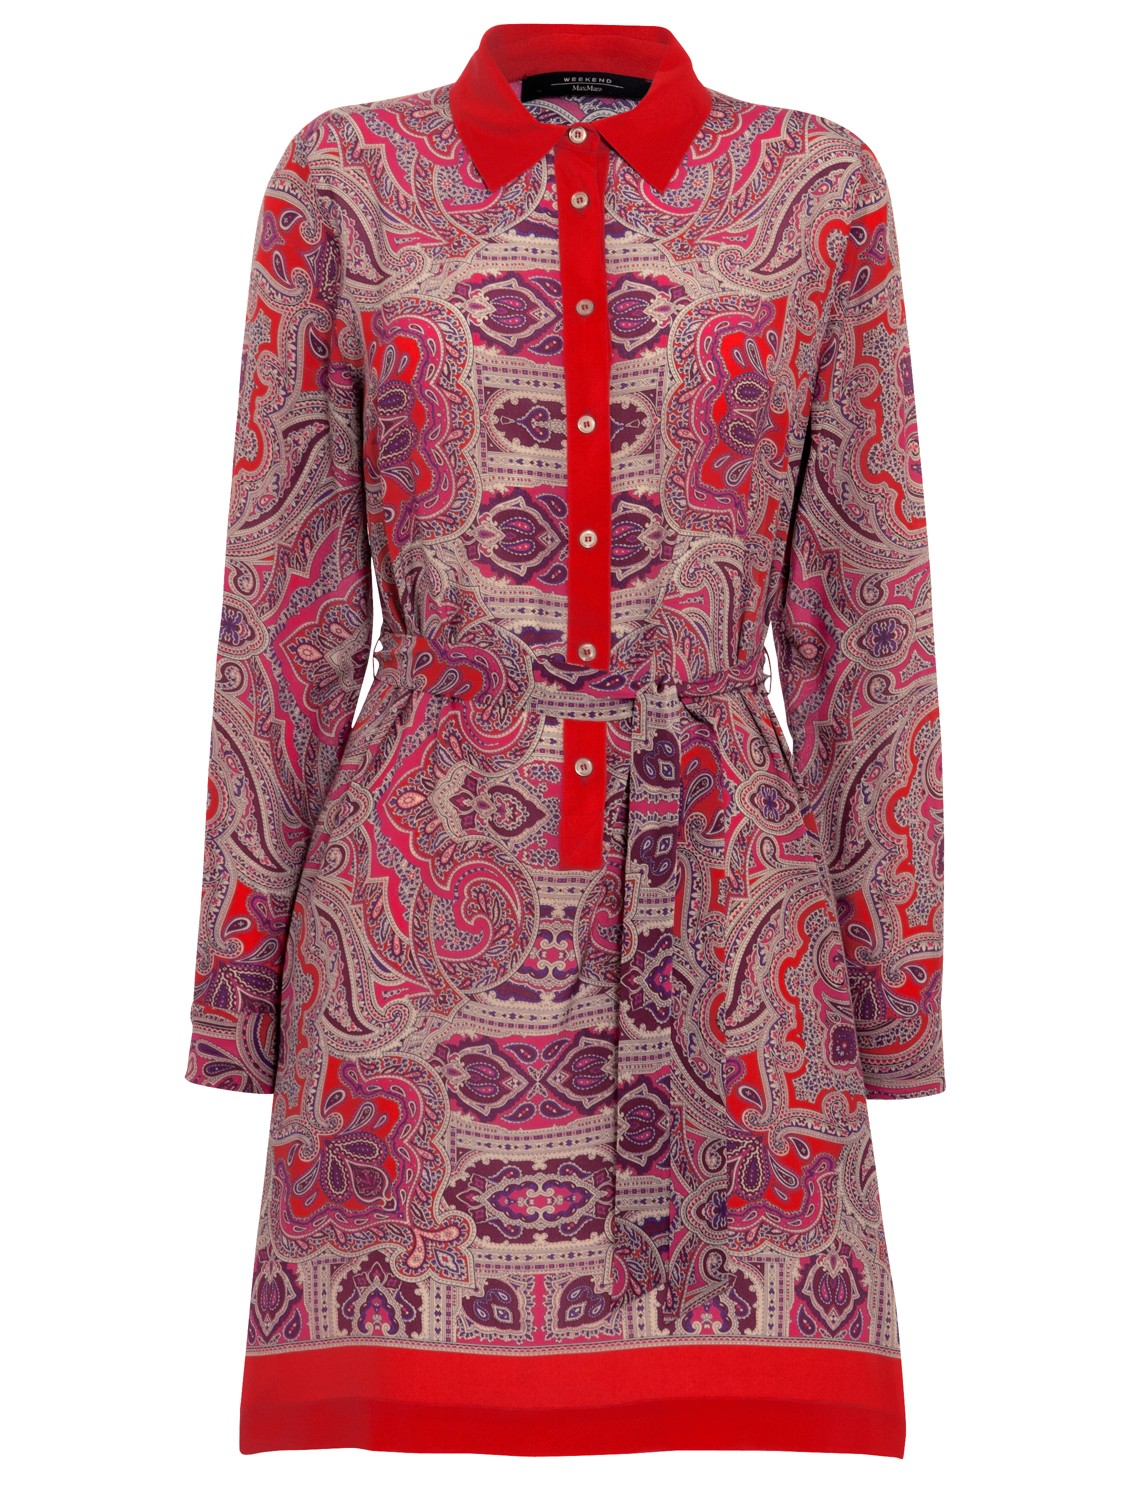 Weekend By Maxmara Silk Paisley Shirt Dress In Red Red